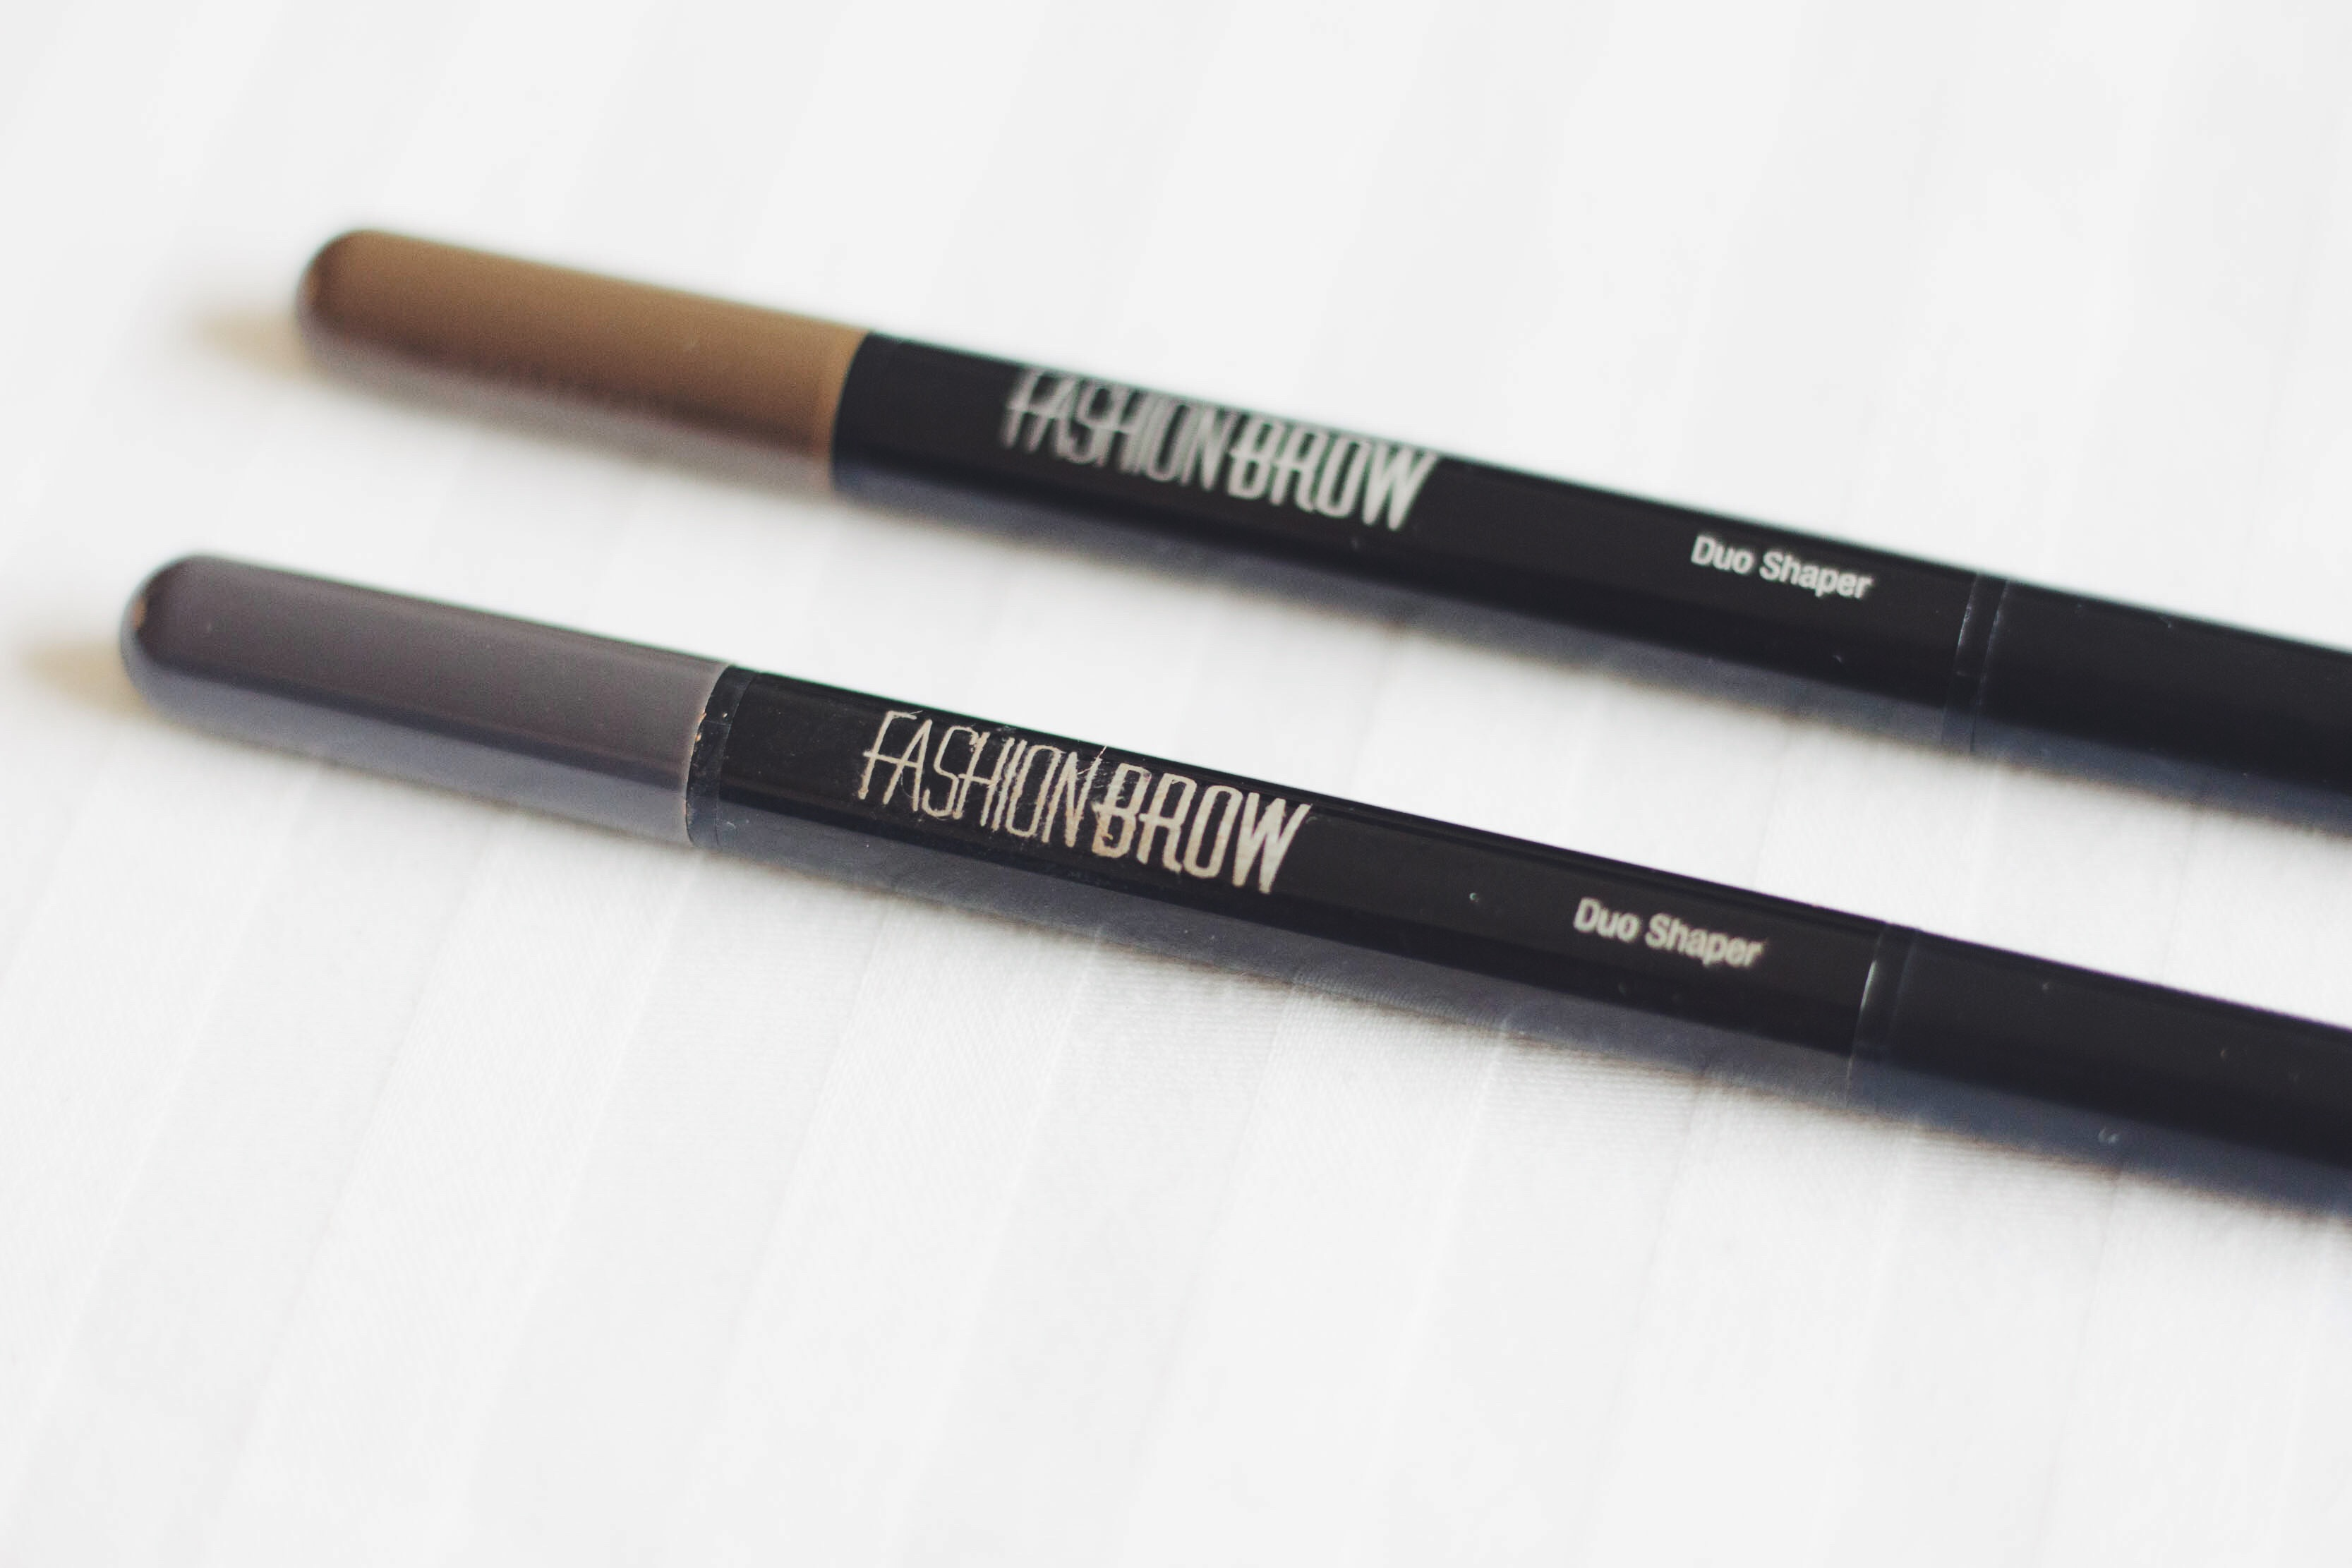 7b641231332 Maybelline Fashion Brow Duo Shaper Demo + Review • Magali Vaz ...